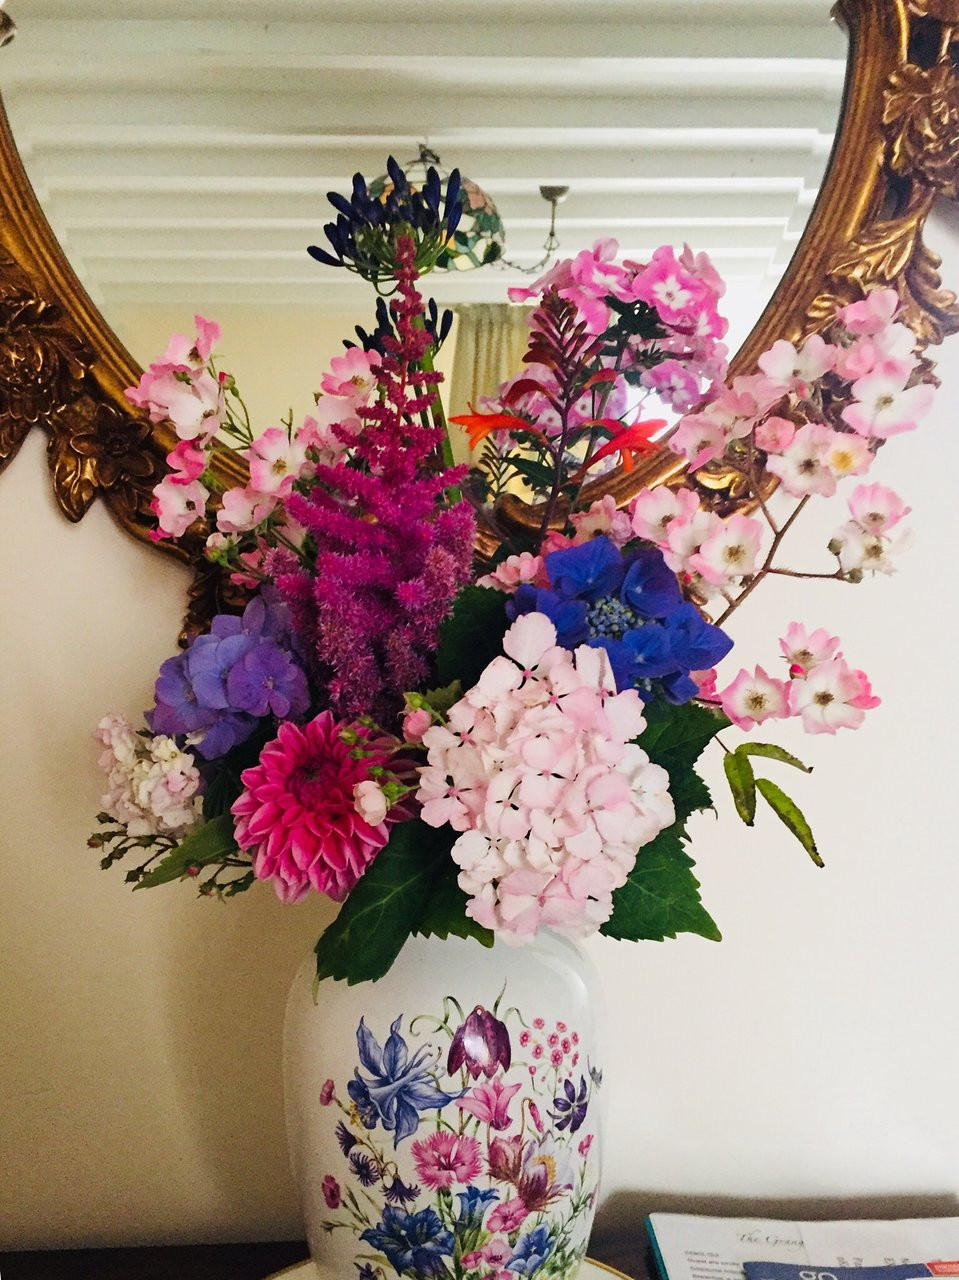 fd1 florist designed bouquet in a vase of the grange bed and breakfast 2018 prices bb reviews photos for the grange bed and breakfast 2018 prices bb reviews photos fylingthorpe tripadvisor